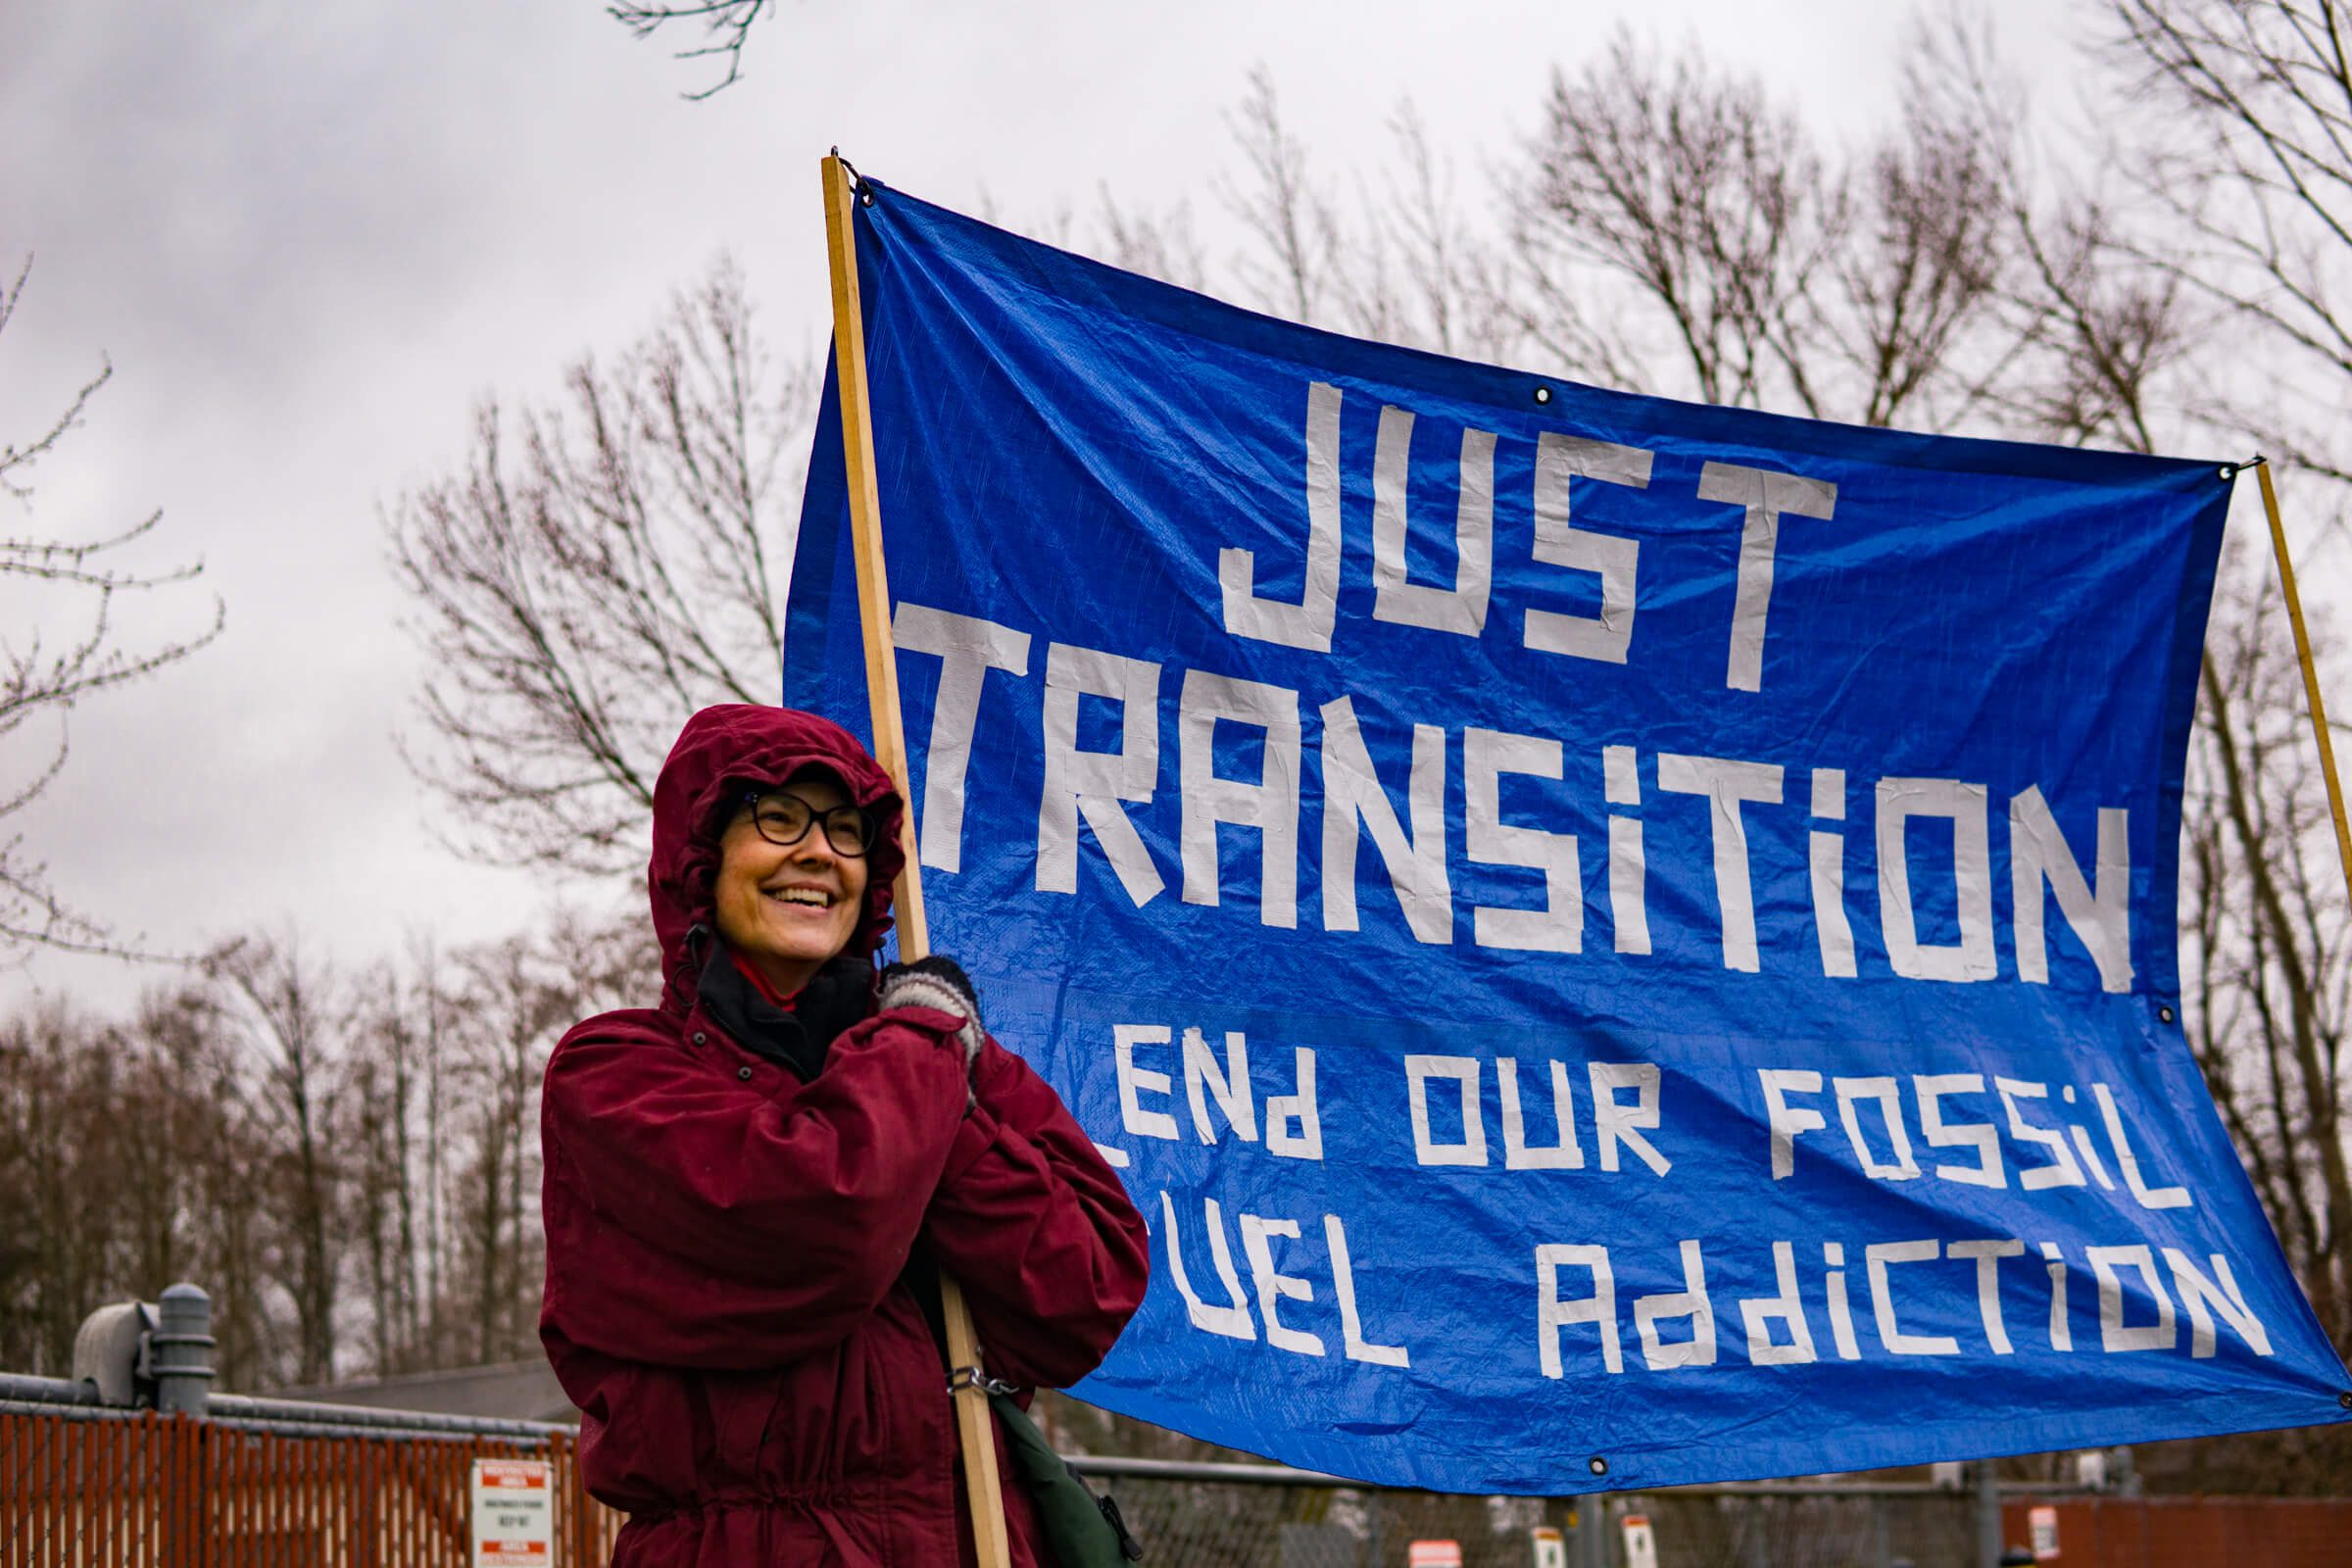 """A person in a red coat smiling holds up a blue tarp with written words: """"Just Transition, end our fossil fuel addiction"""""""